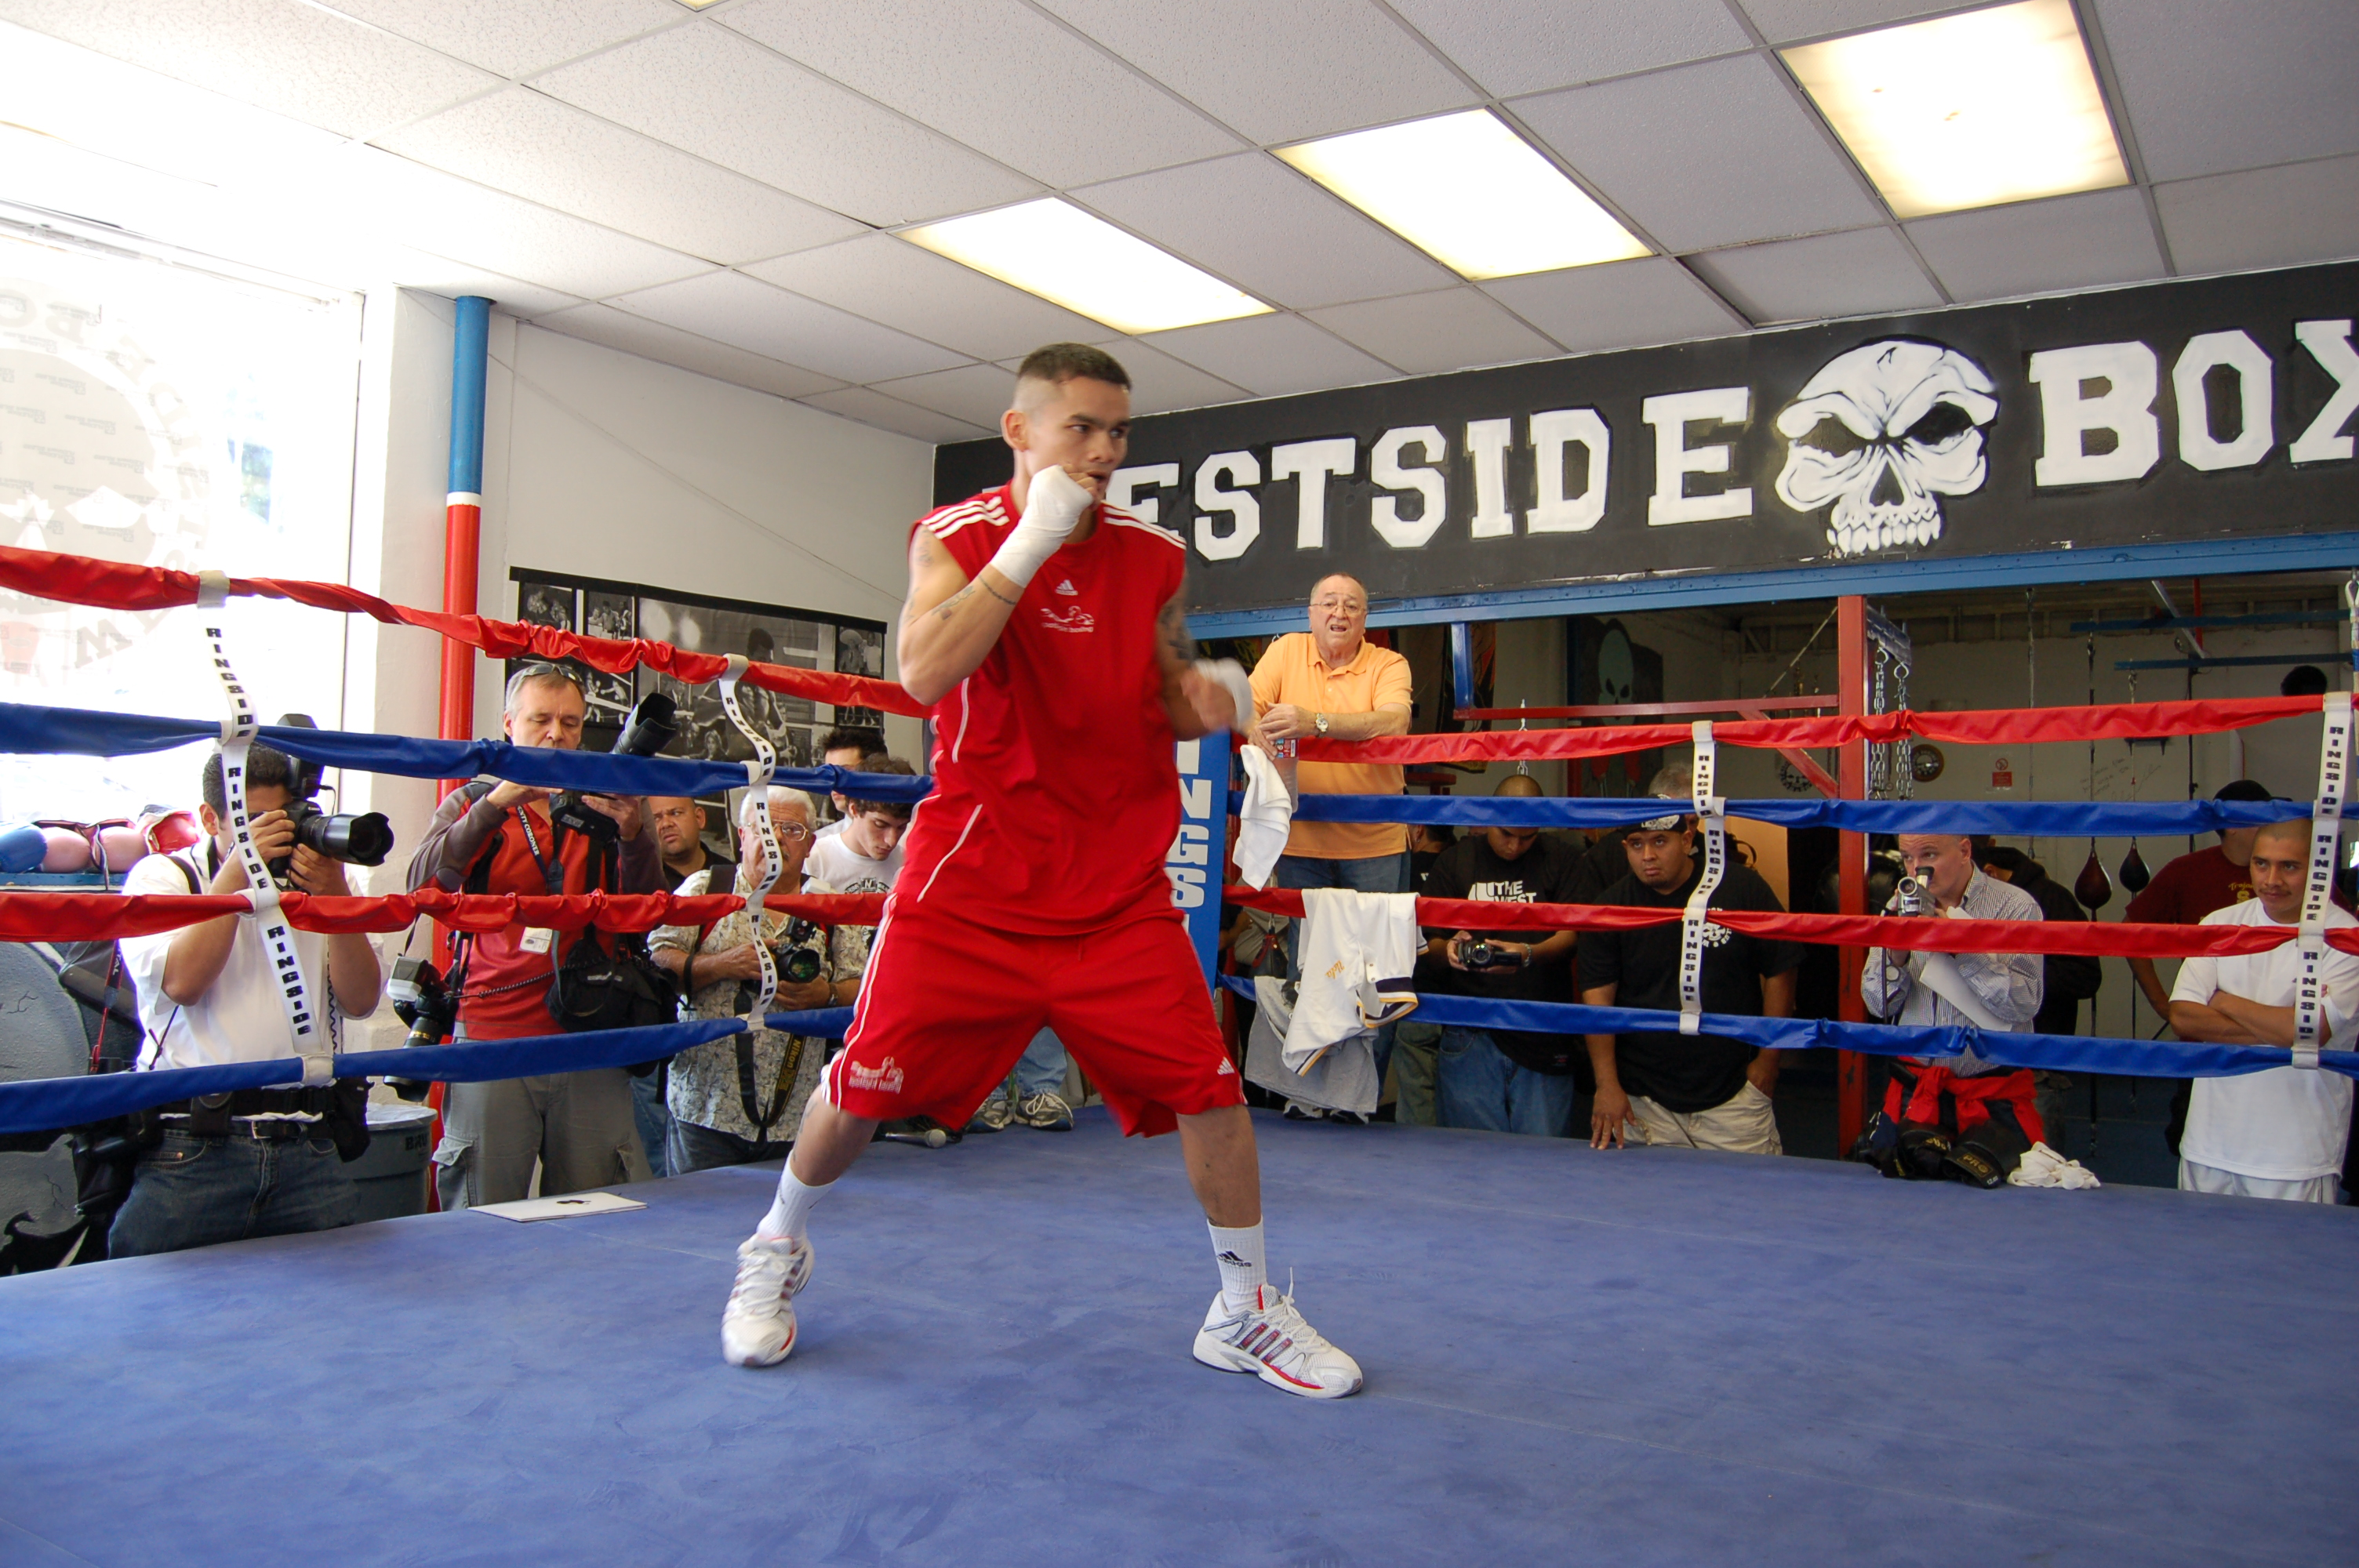 http://upload.wikimedia.org/wikipedia/commons/0/06/Marcos_Maidana_at_Westside_Boxing_Club_in_Los_Angeles.JPG